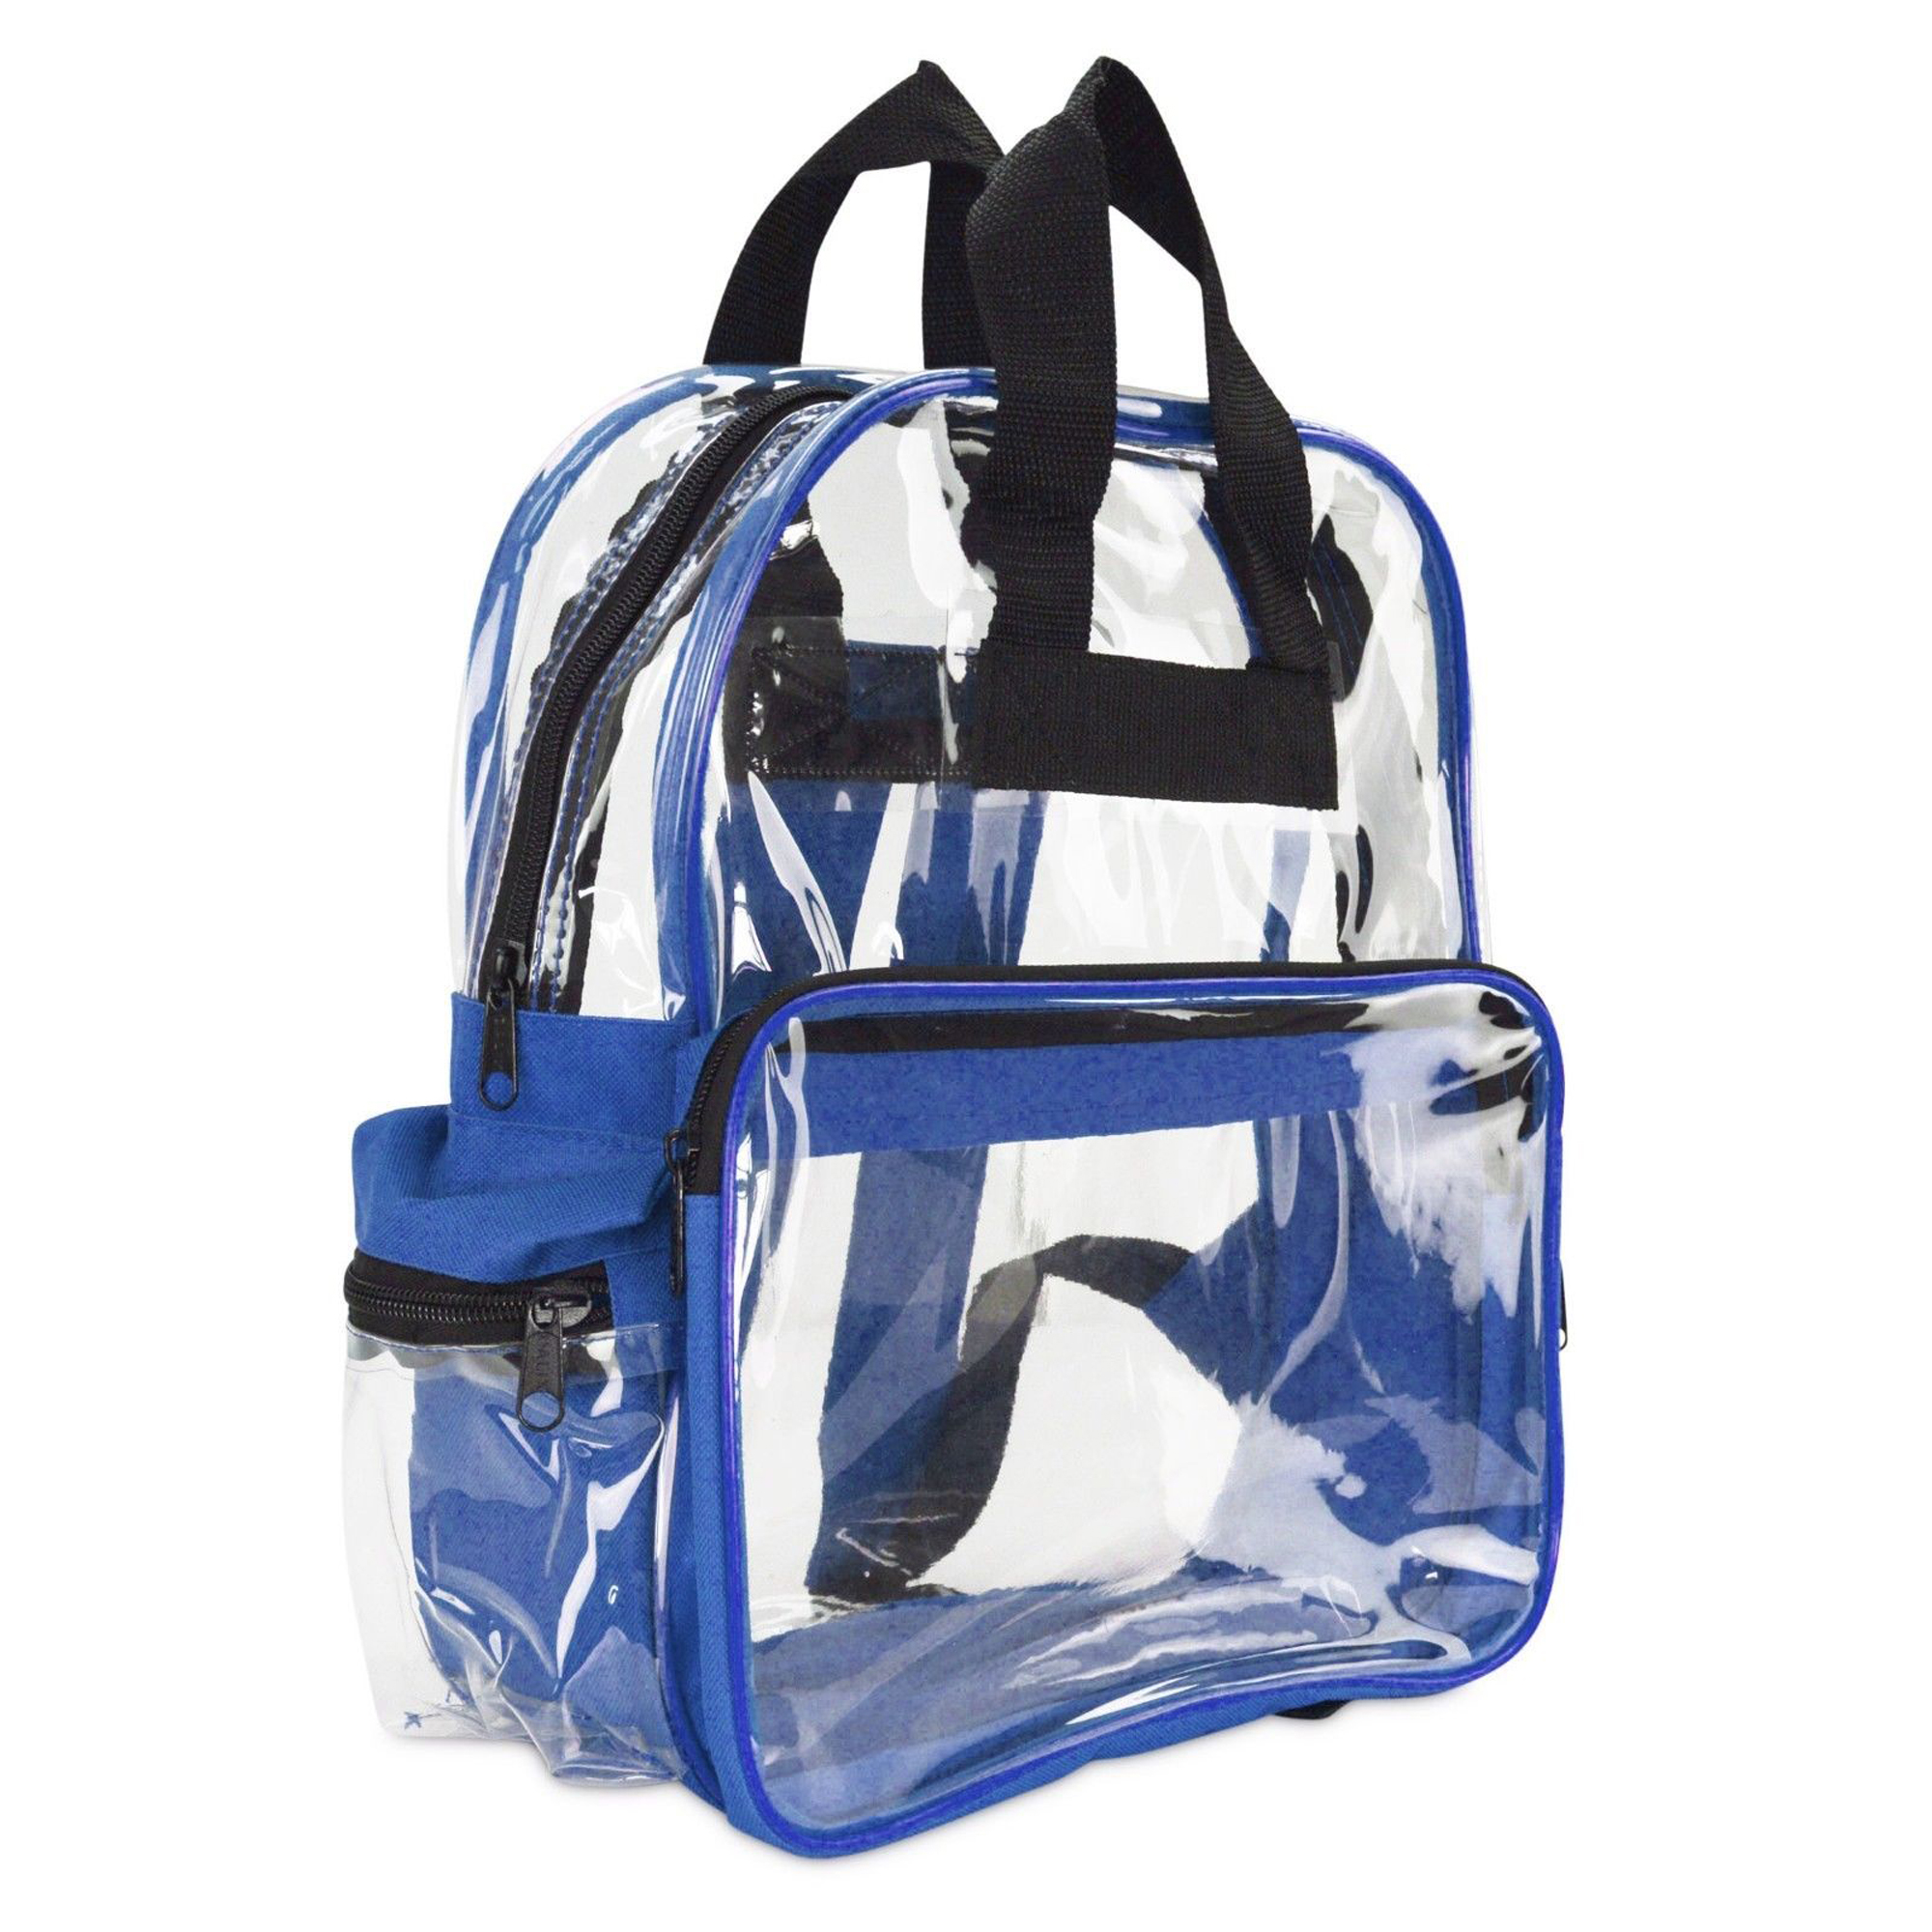 "Clear Backpack Camping Hiking Daypacks, NFL Sports Events Approved Backpack, Music Events Backpack, Custom Clear CBP Backpack Transparent Backpacks (Clear - 15"") Royal/Clear or Blue/Clear"